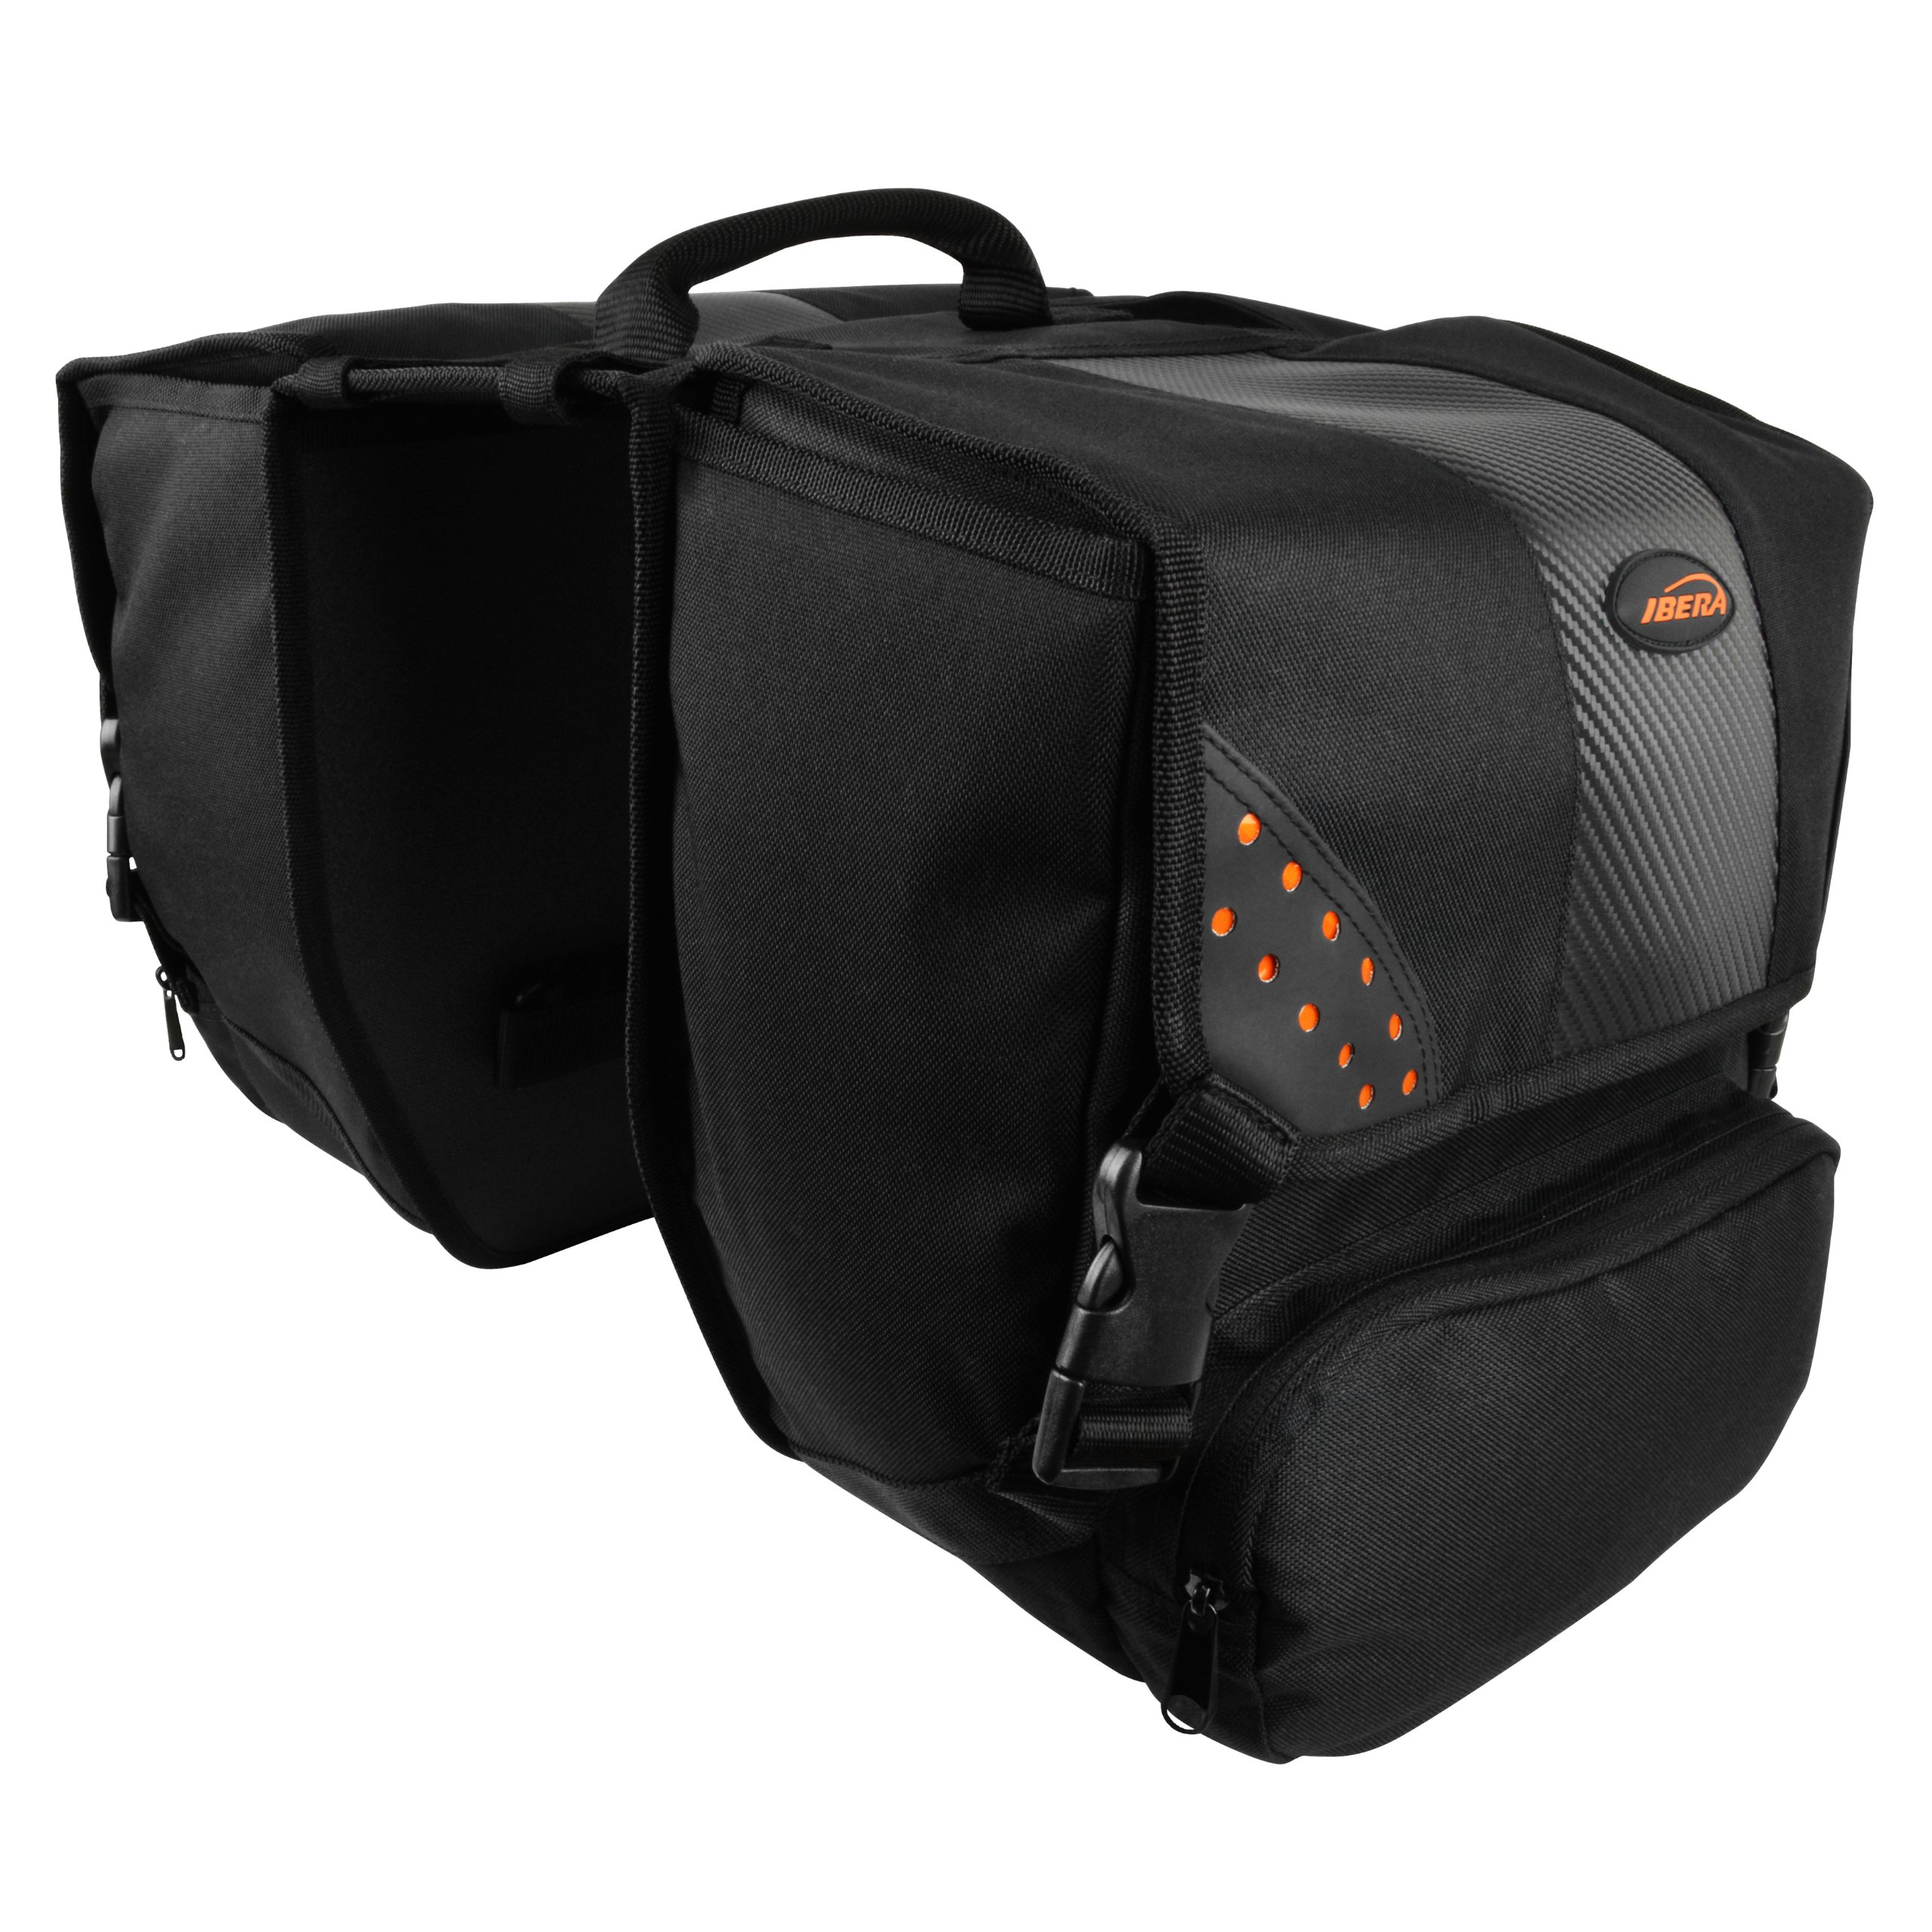 Ibera Bicycle Side-Mounting Pannier Set, Bike Panniers with Multi-Compartments, Slit on Top to Mount on Smaller Racks  by Ibera (Image #4)